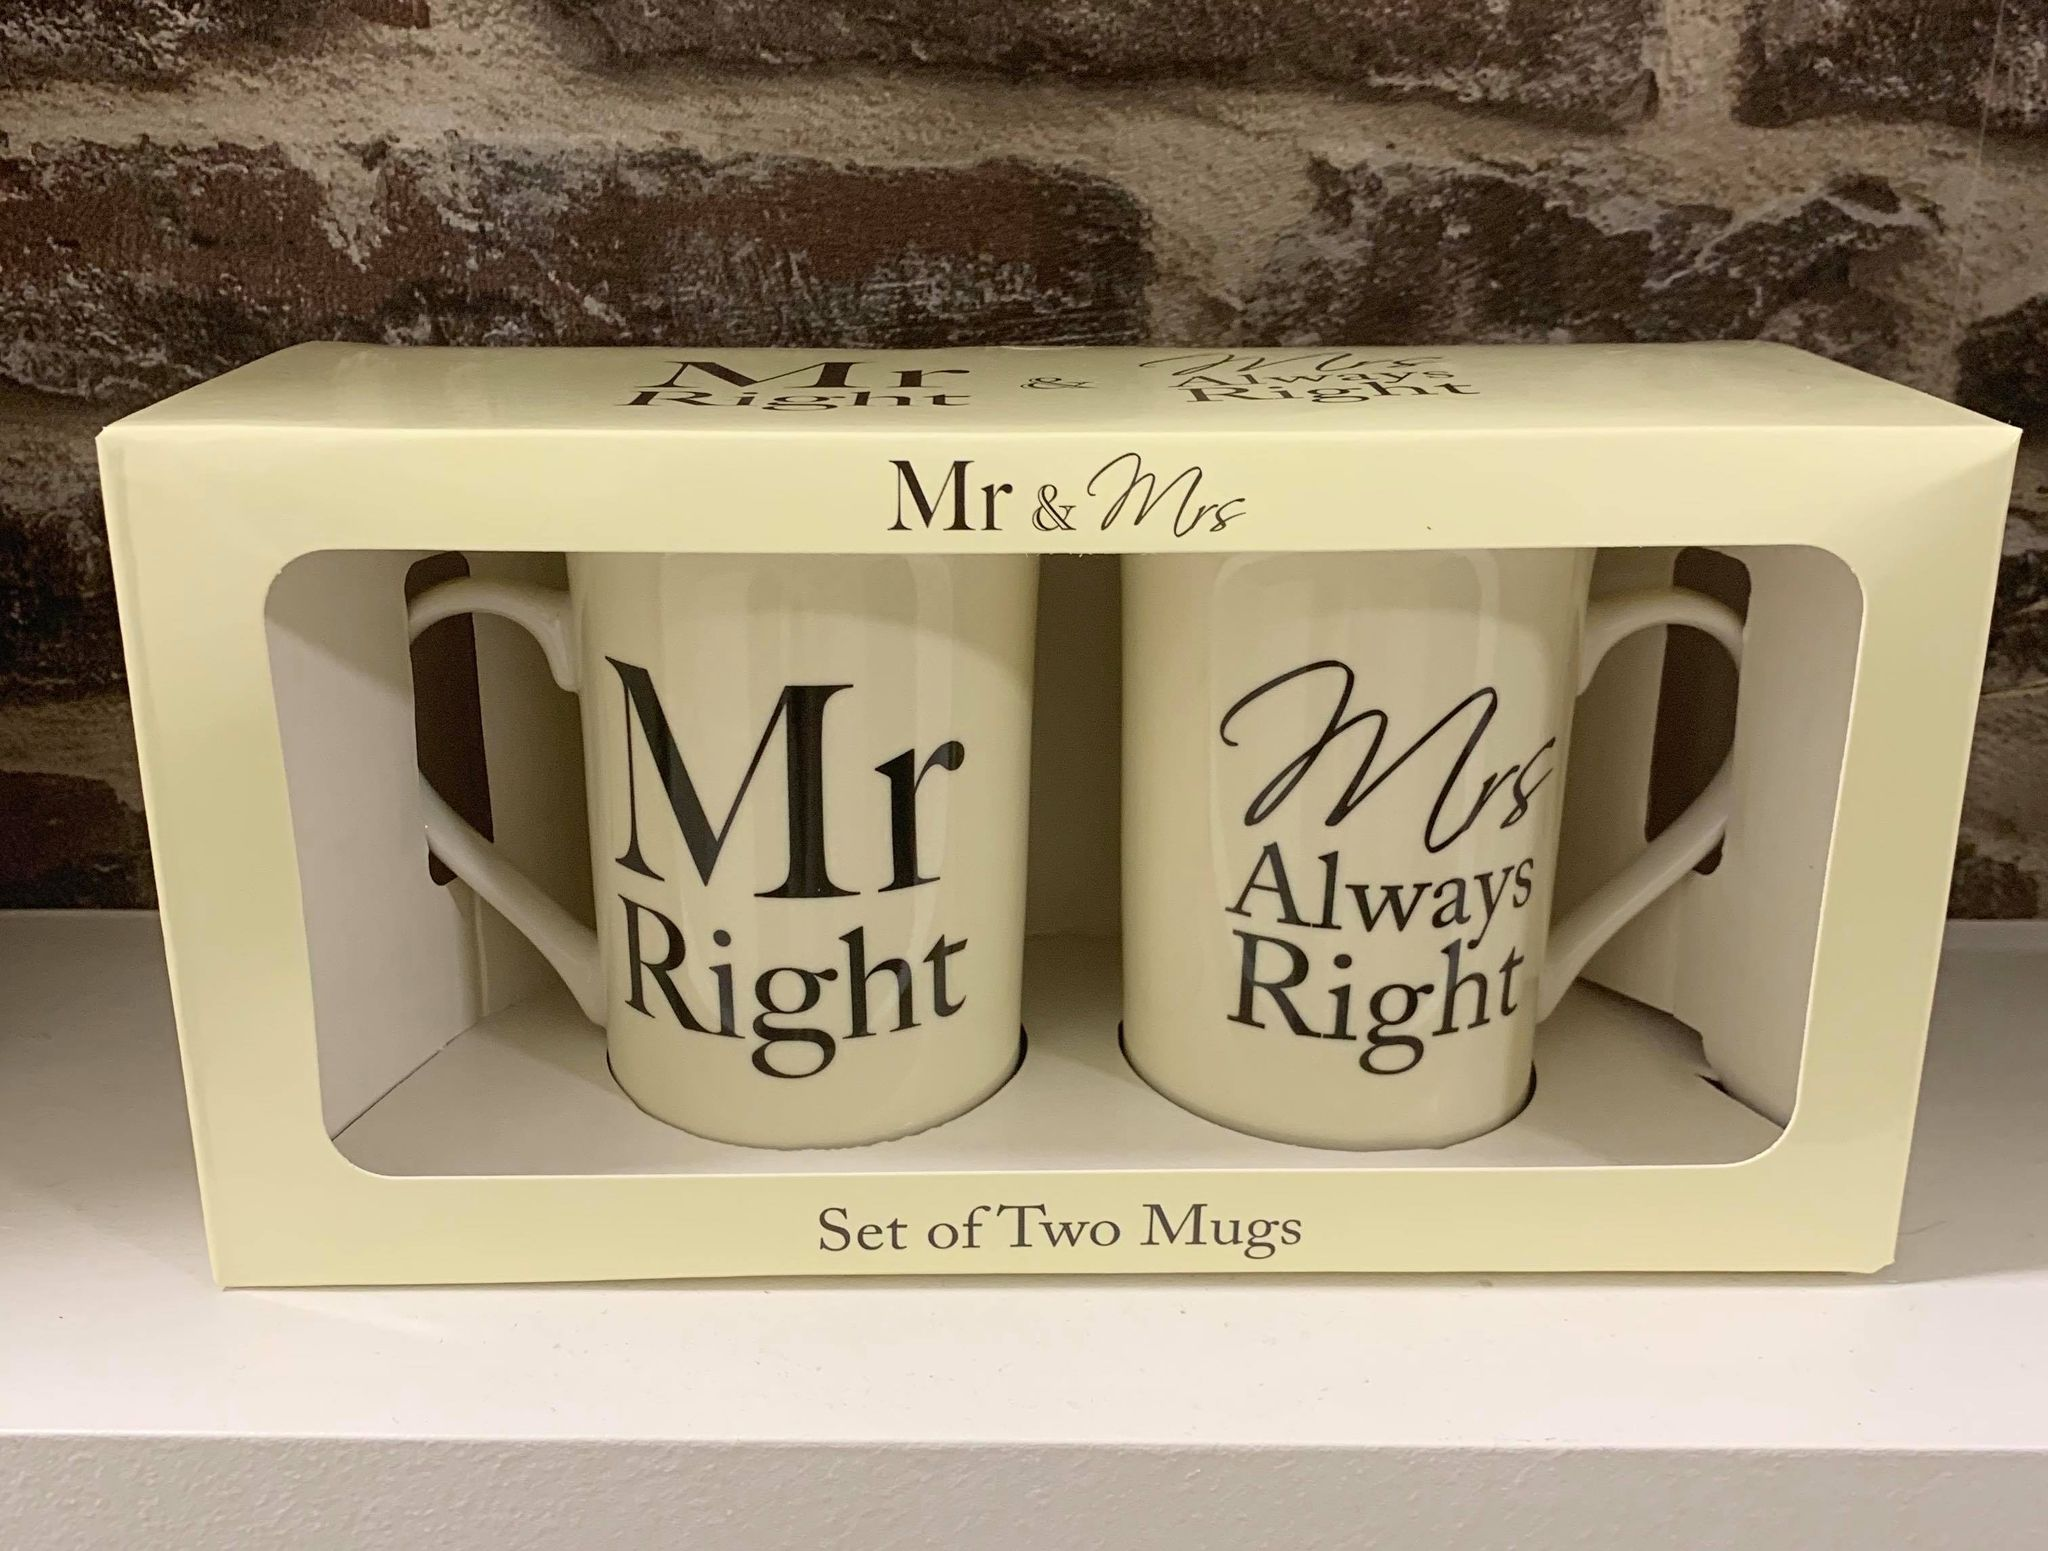 Mr and Mrs always right mugs